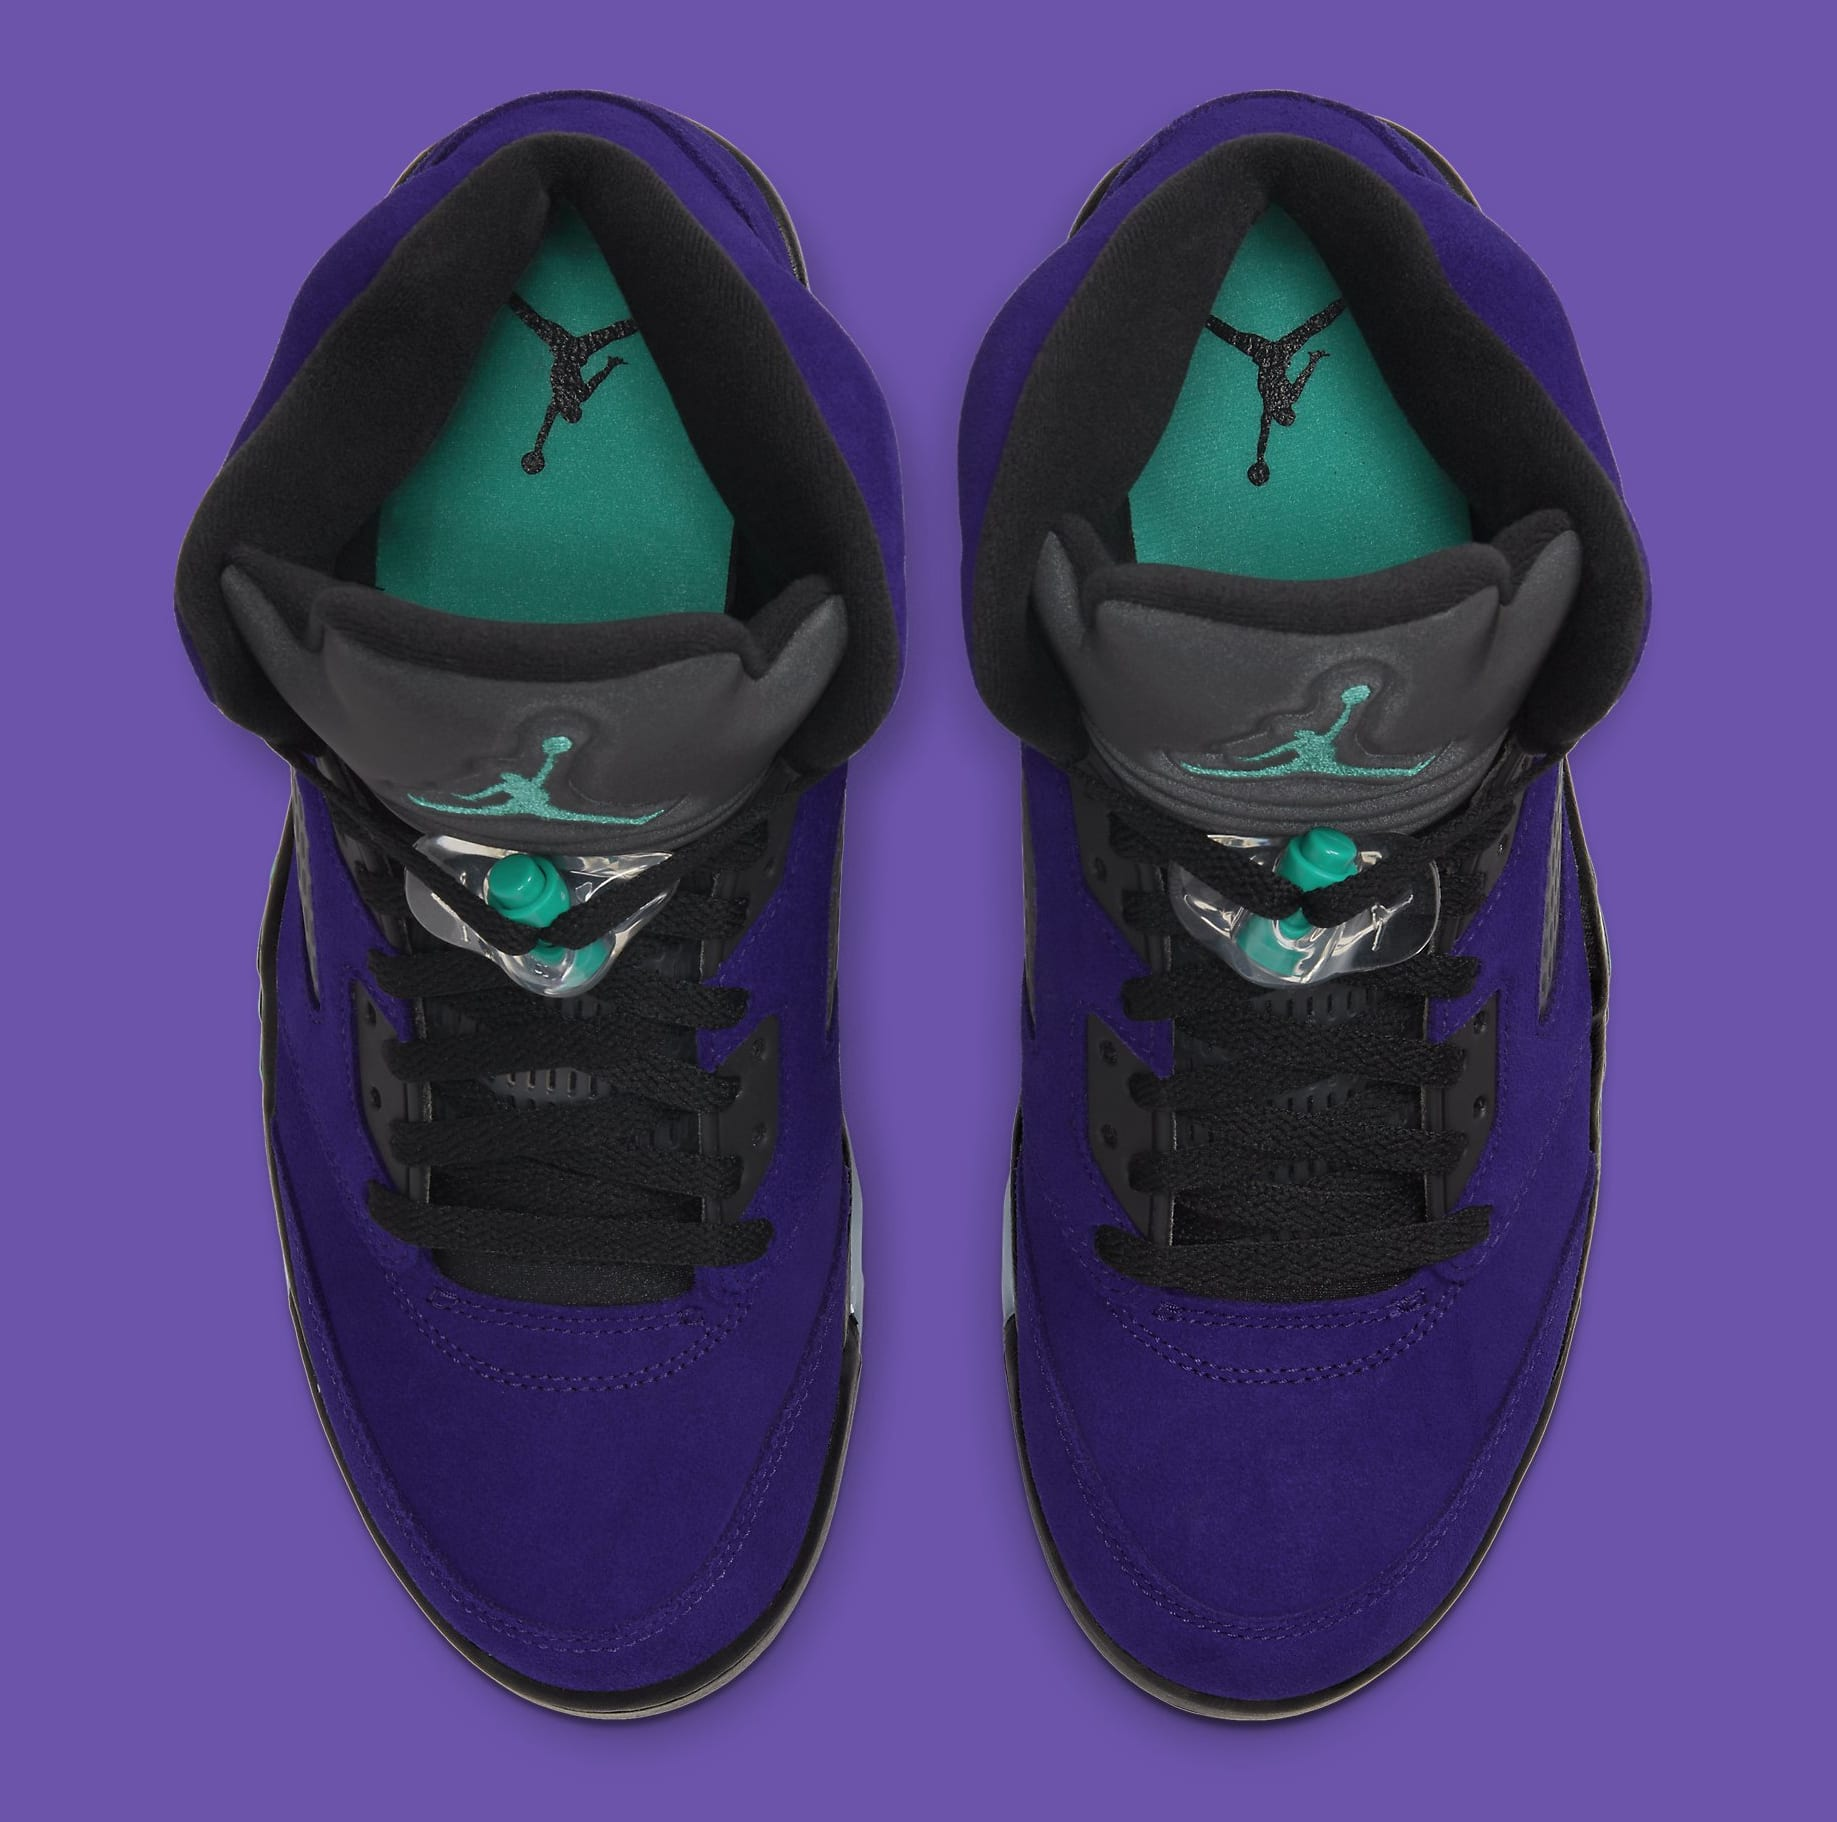 Air Jordan 5 Retro 'Alternate Grape' 136027-500 Top